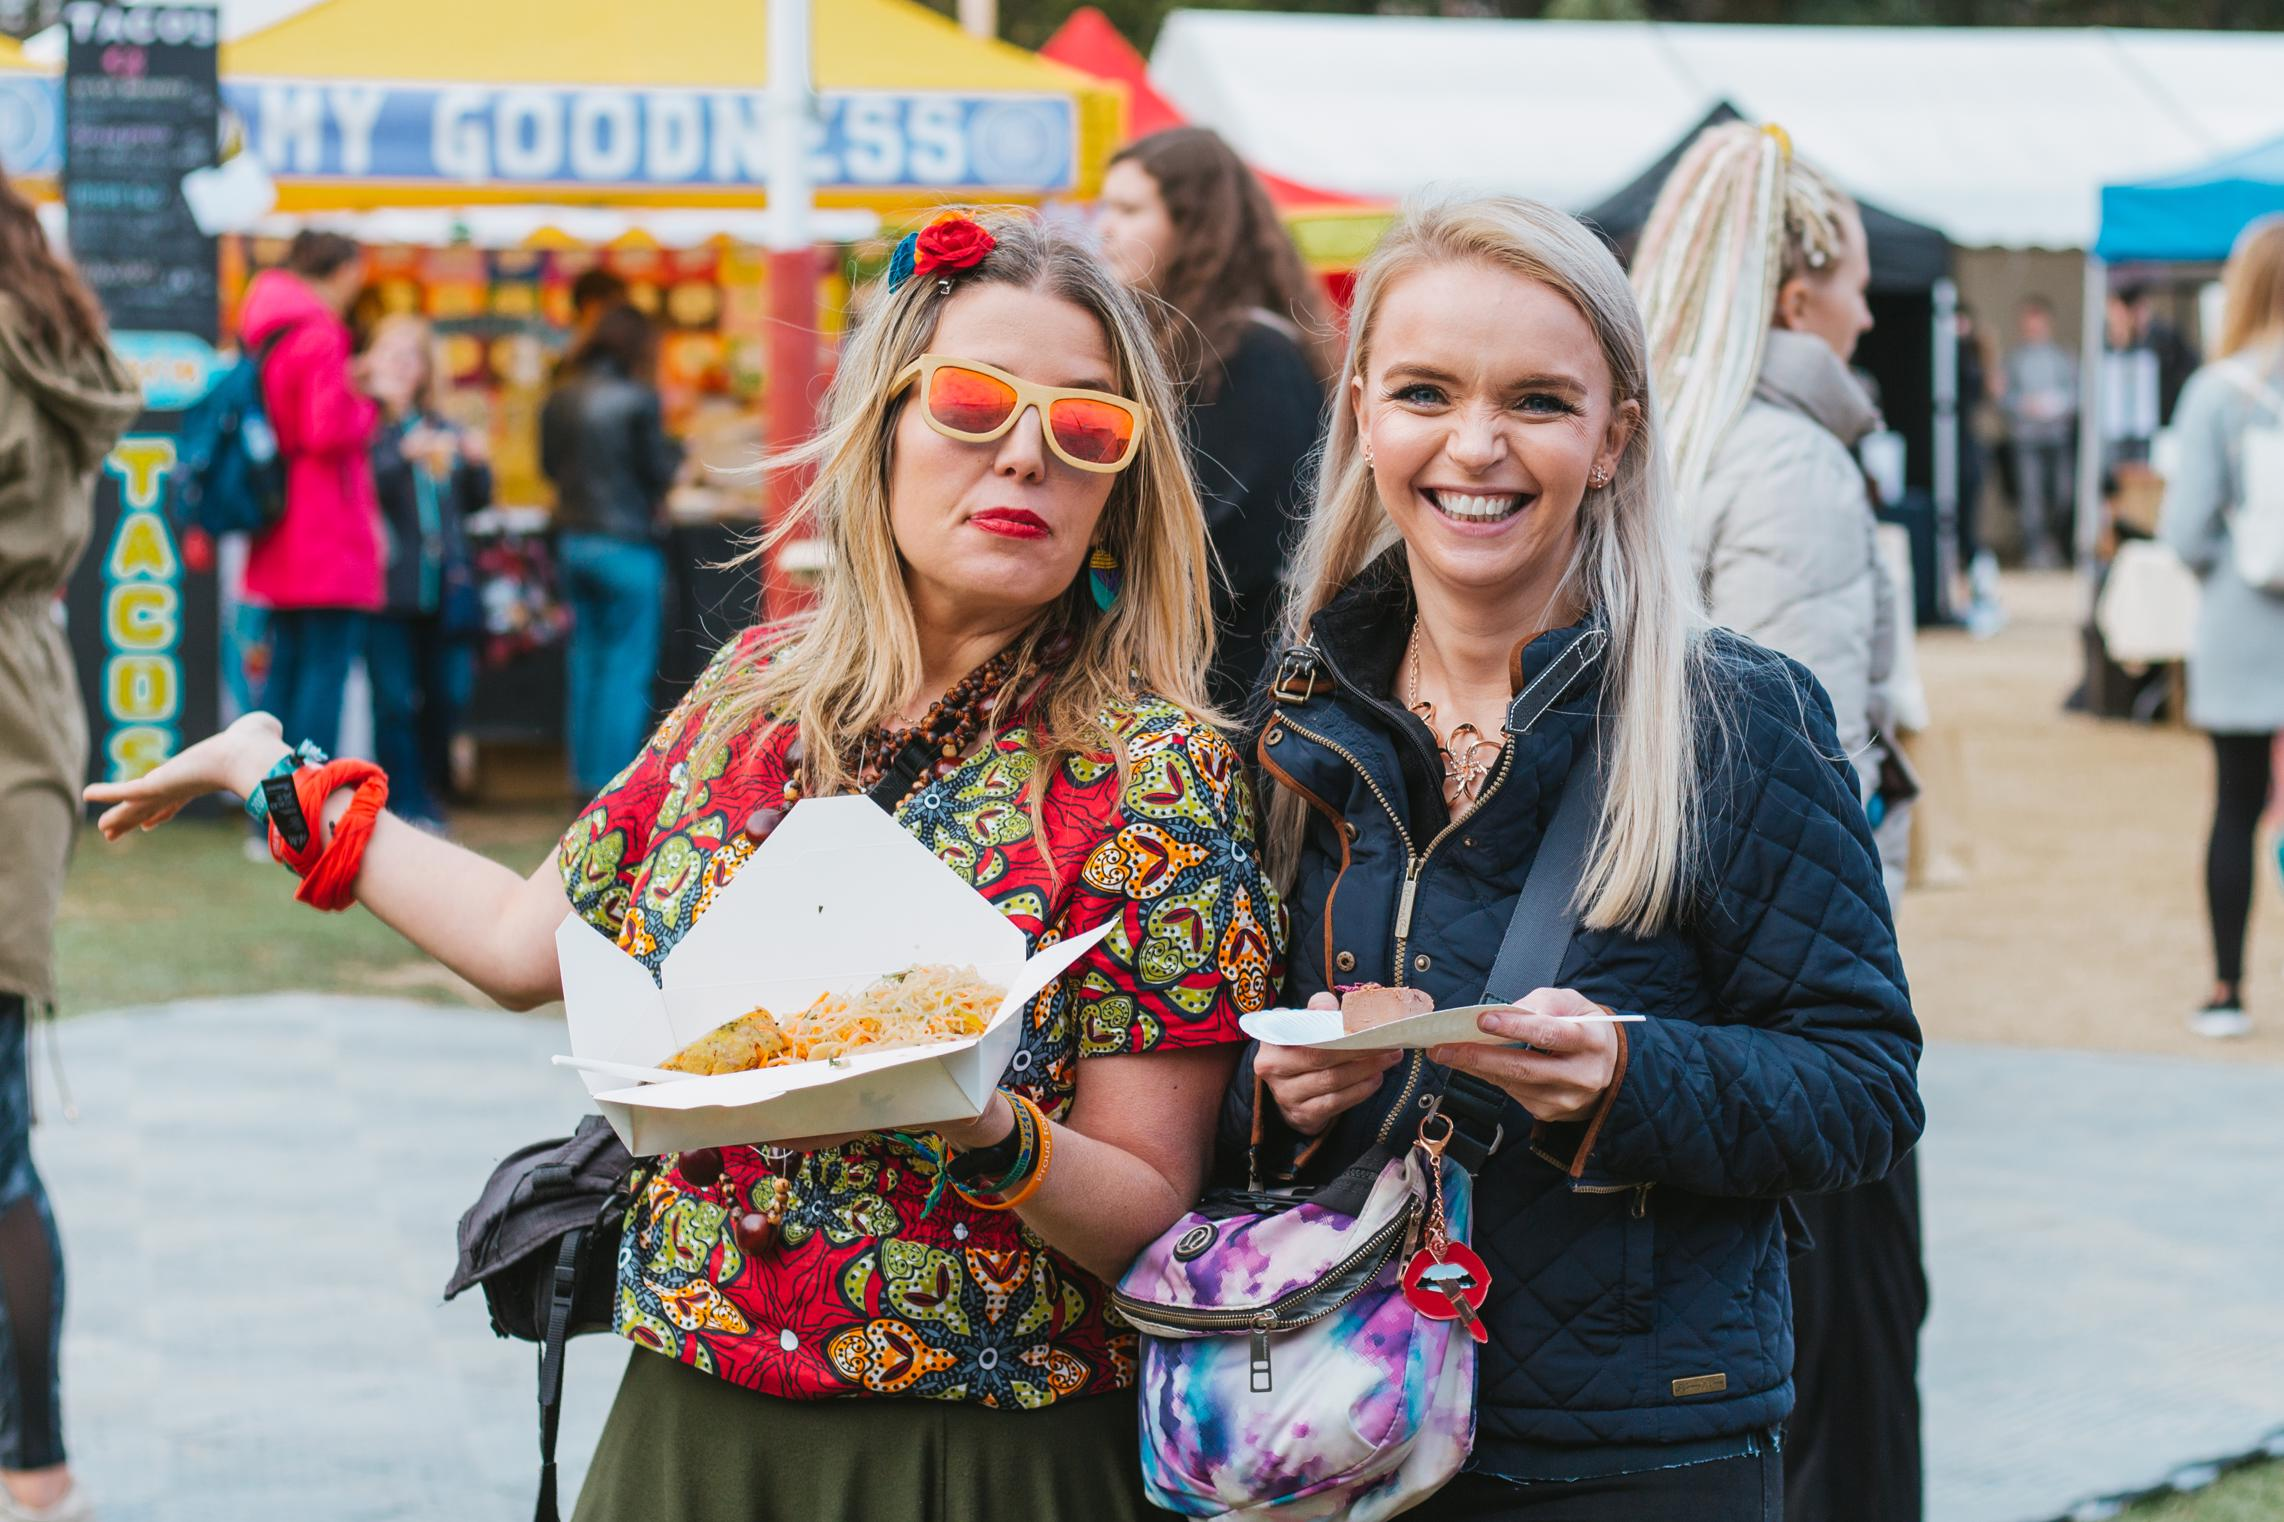 A WOMAN WEARING MIRROR SUNGLASSES INA COLOURFUL OUTFIT HOLDING VEGAN FOOD WITH ANOTHER WOMAN ALSO HOLDING FOOD SMILING AND LAUGHING AT DUBLIN VEGFEST